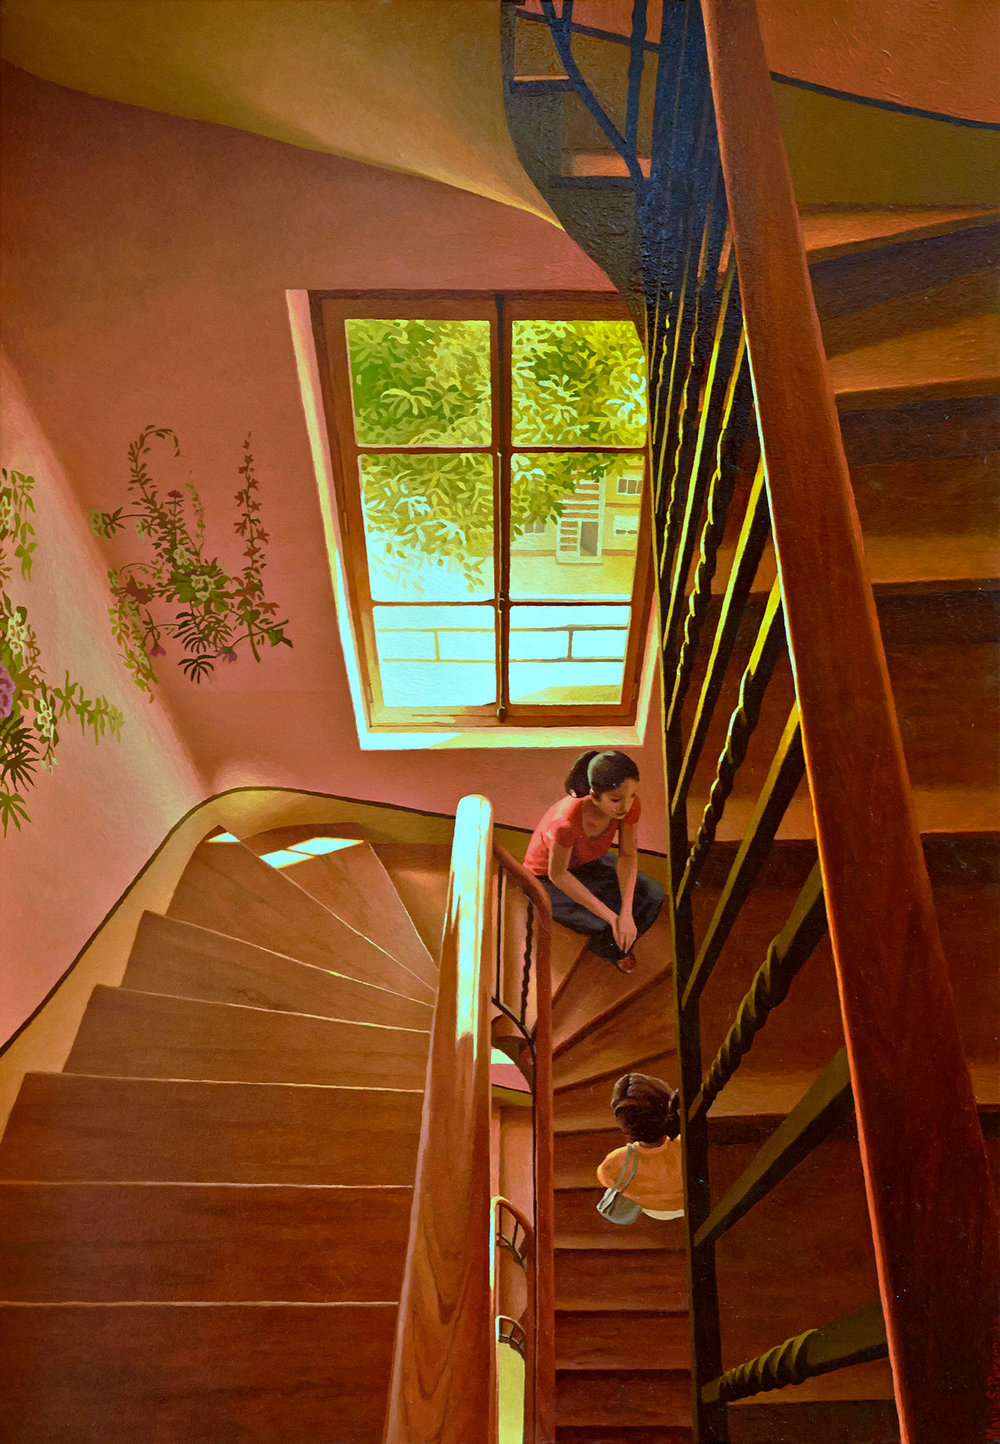 Stairwell cage with flower murals